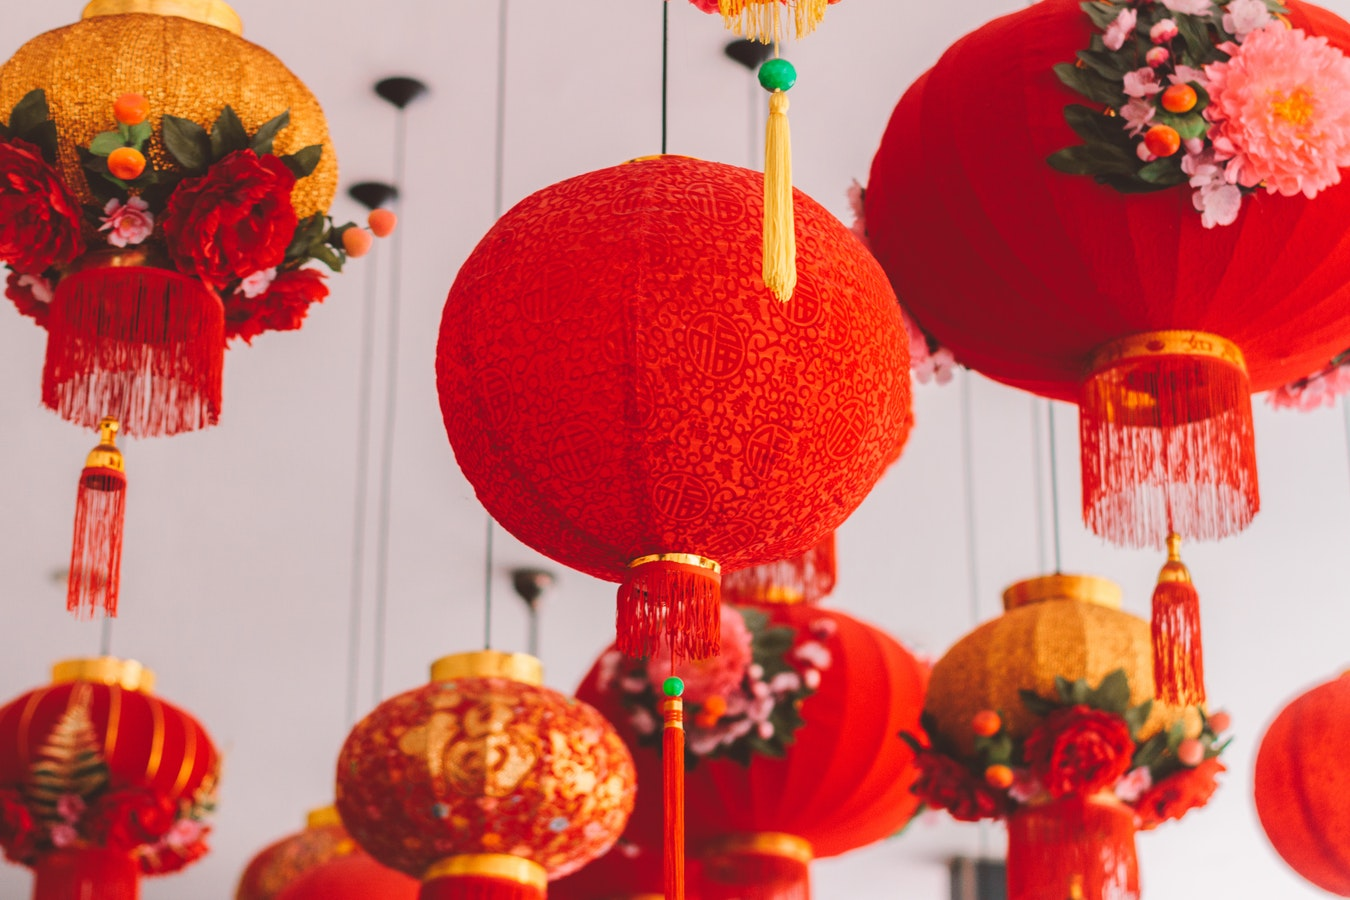 HOW TO DECORATE YOUR HOME FOR CHINESE NEW YEAR